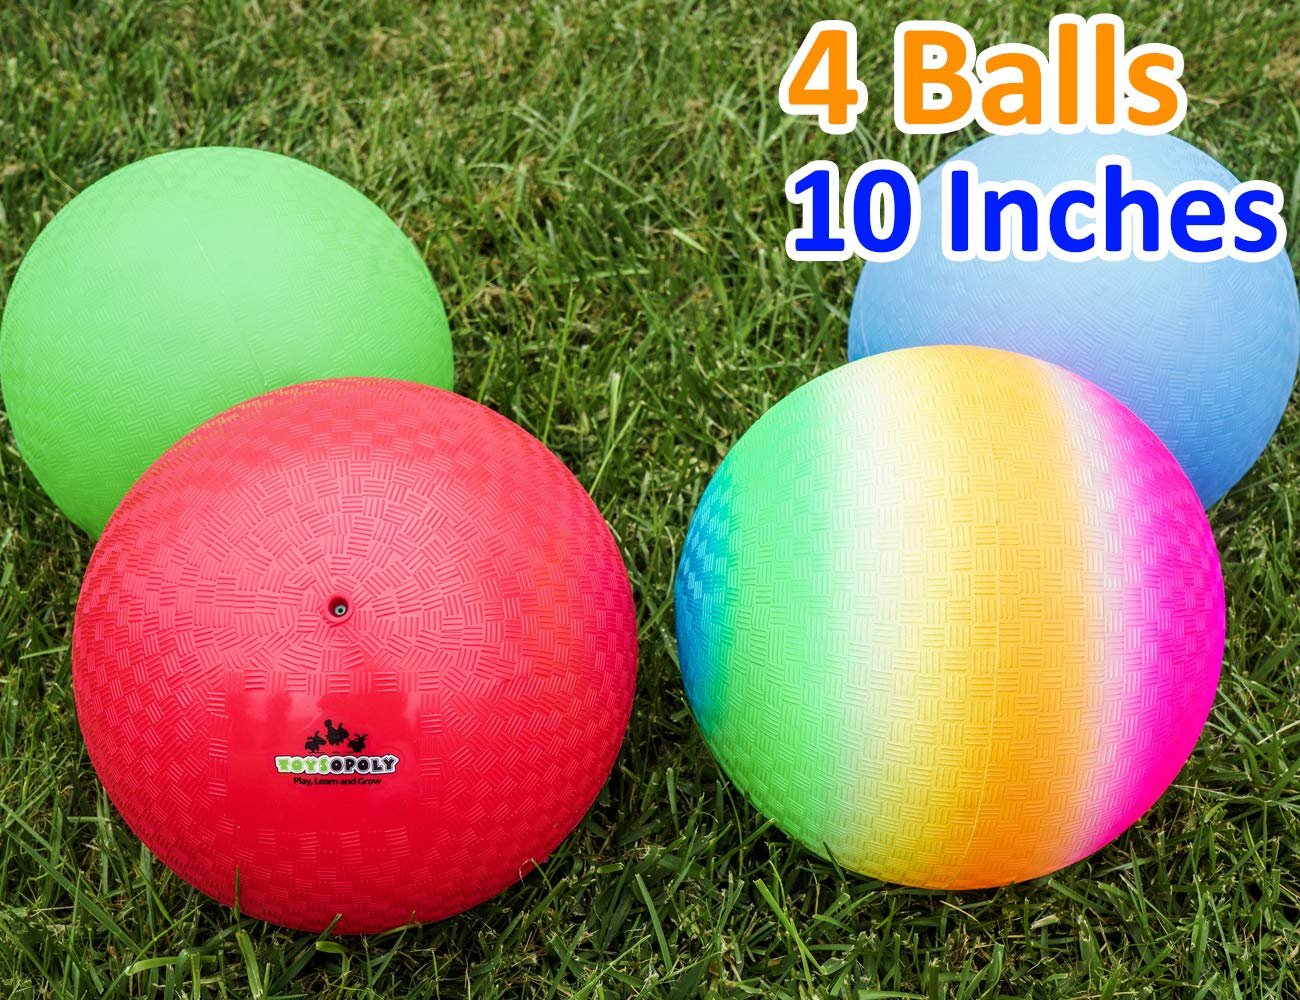 Playground Balls 10 inch Dodgeball (Set of 4) Kickball for Boys Girls Kids Adults - Official Size Bouncy Dodge Ball, Handball, Four Square Picnic School + Free Pump by ToysOpoly